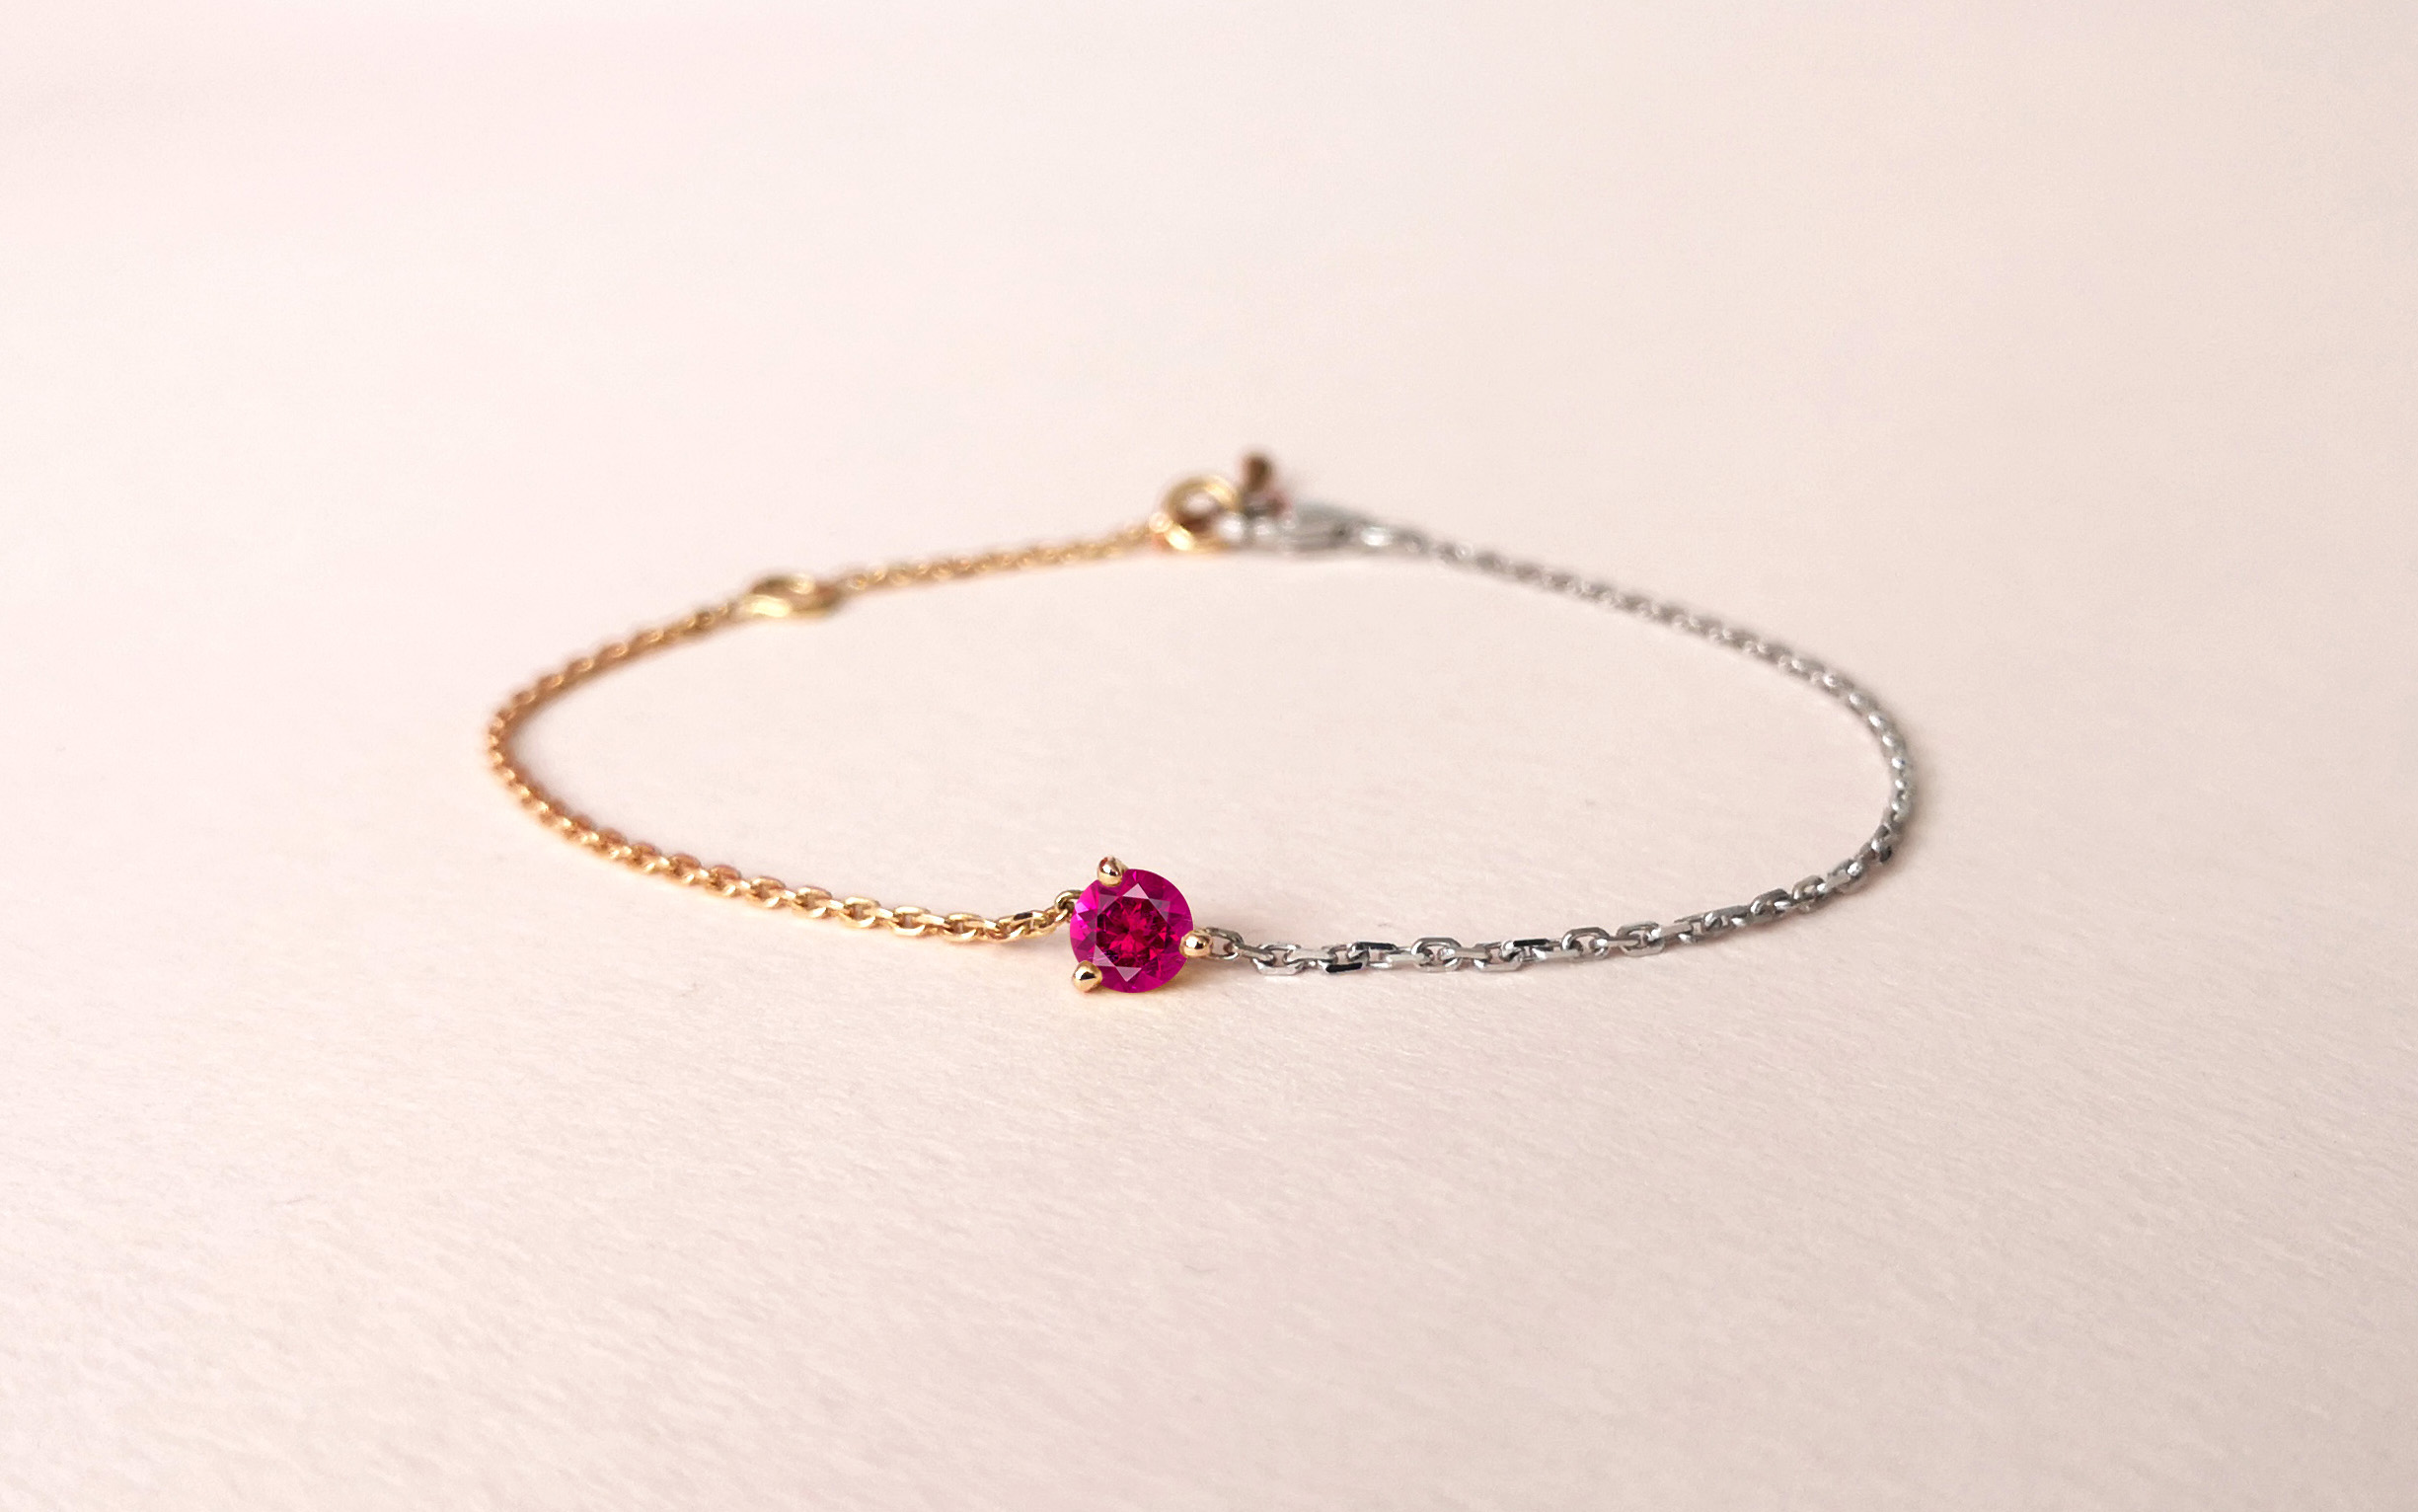 Bracelet Douce Echappée rubellite, Collection Weekends Express - Courpré Joaillerie - The Explorative Fine Jewelry